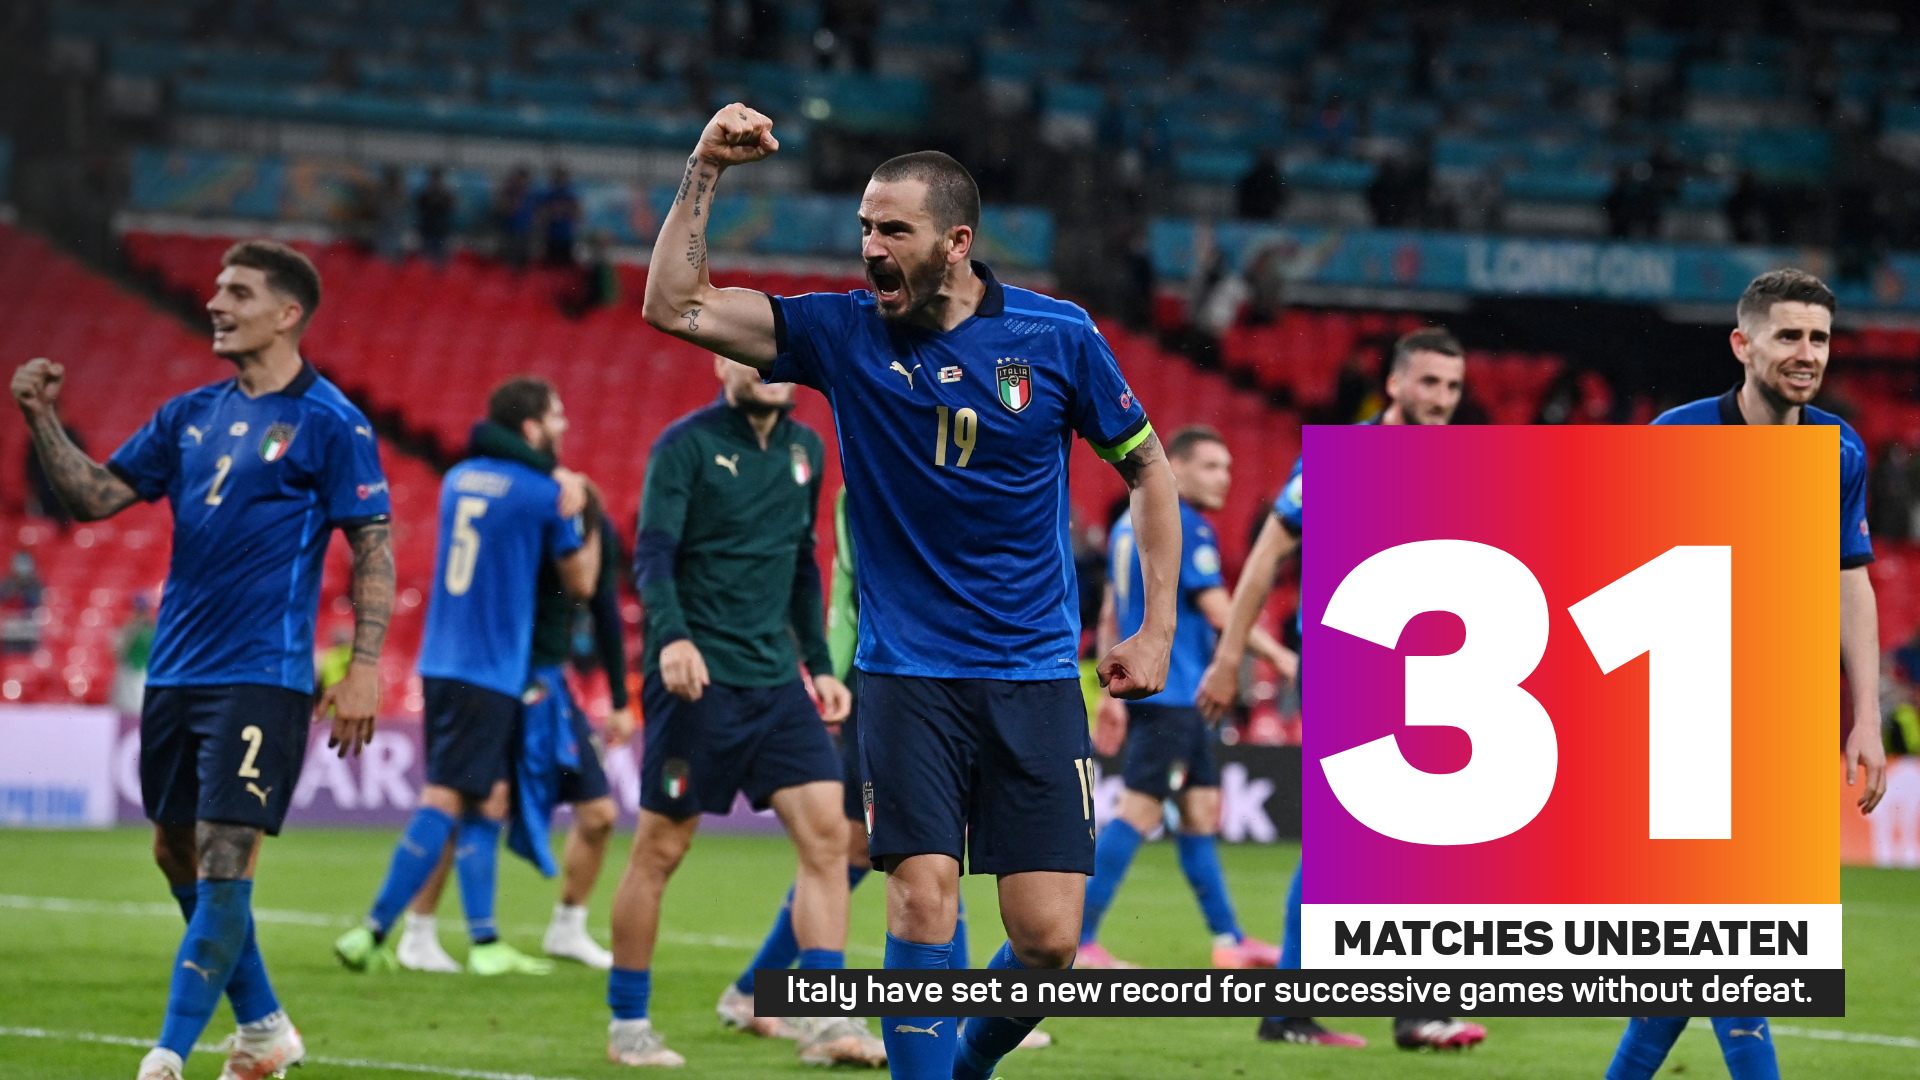 Italy have set a new record for successive games without defeat